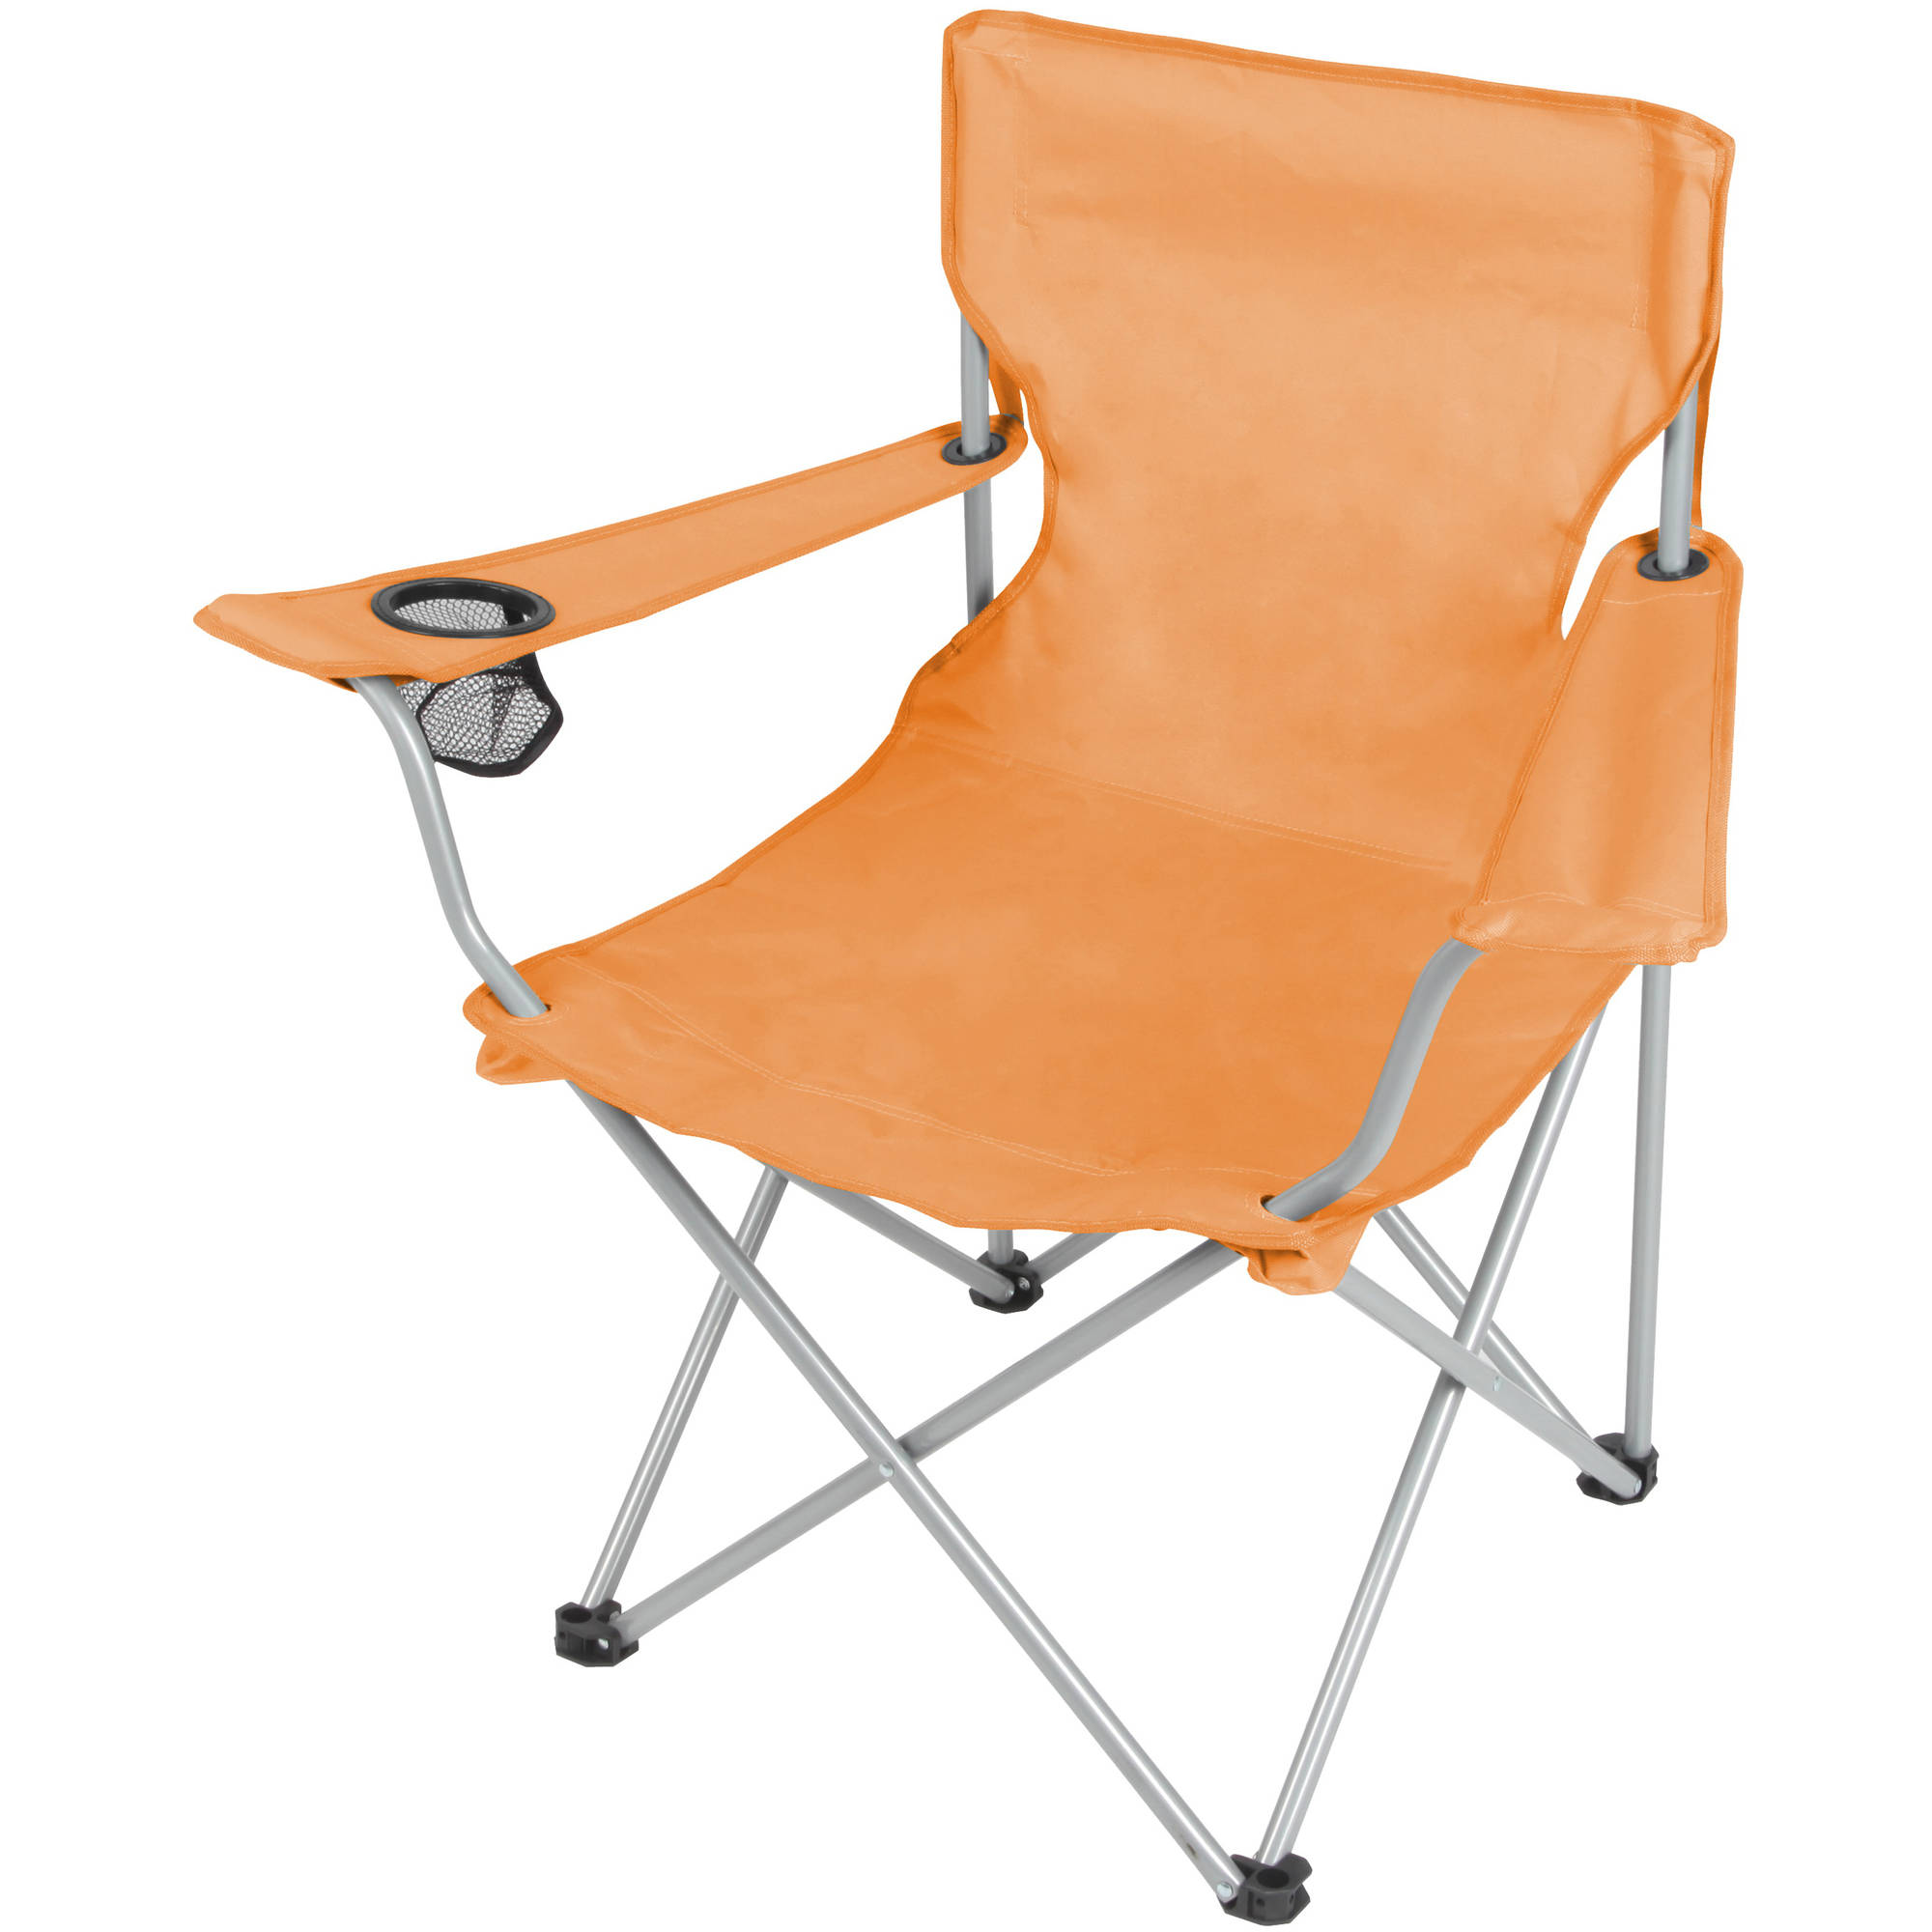 Phenomenal Ozark Trail Folding Chair Walmart Com Beatyapartments Chair Design Images Beatyapartmentscom